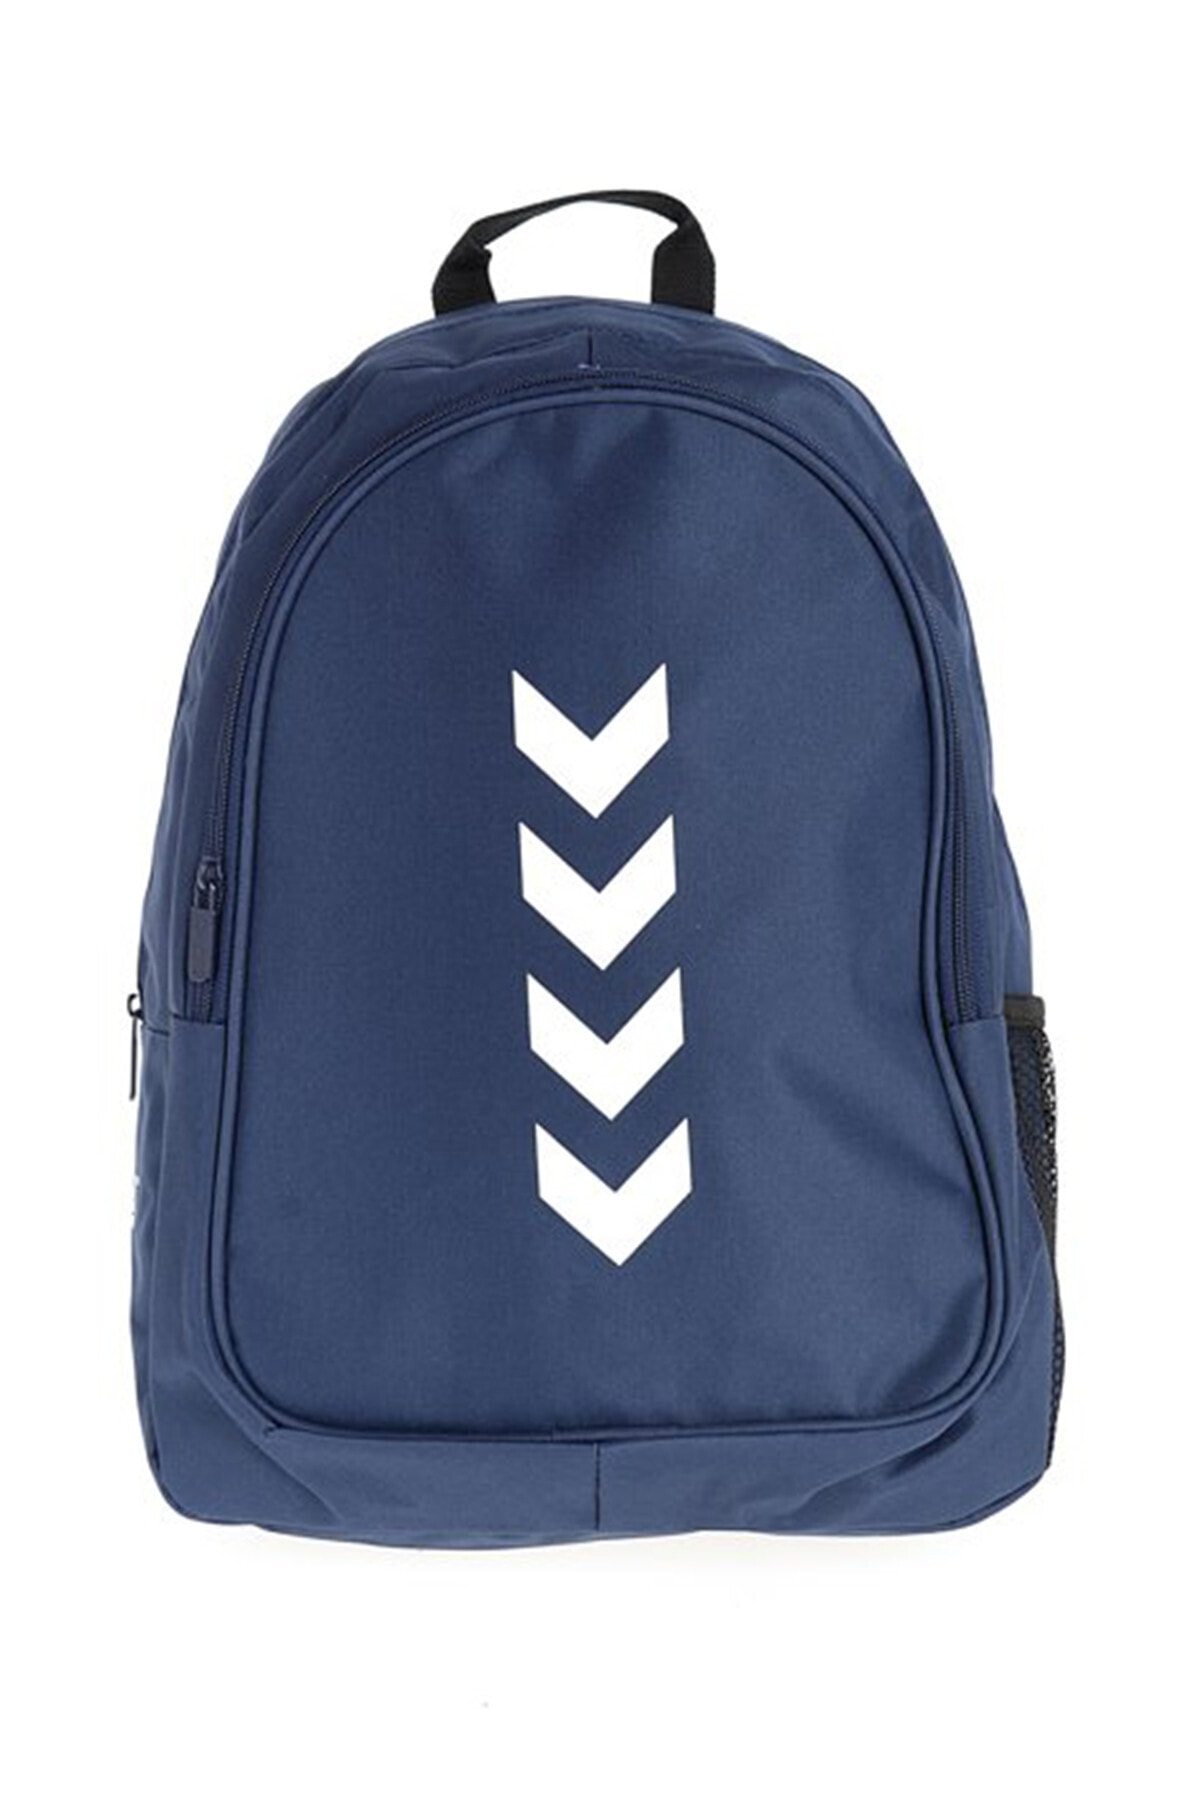 HUMMEL DAVID BACK PACK Mavi Unisex Sırt Çantası 100352737 1